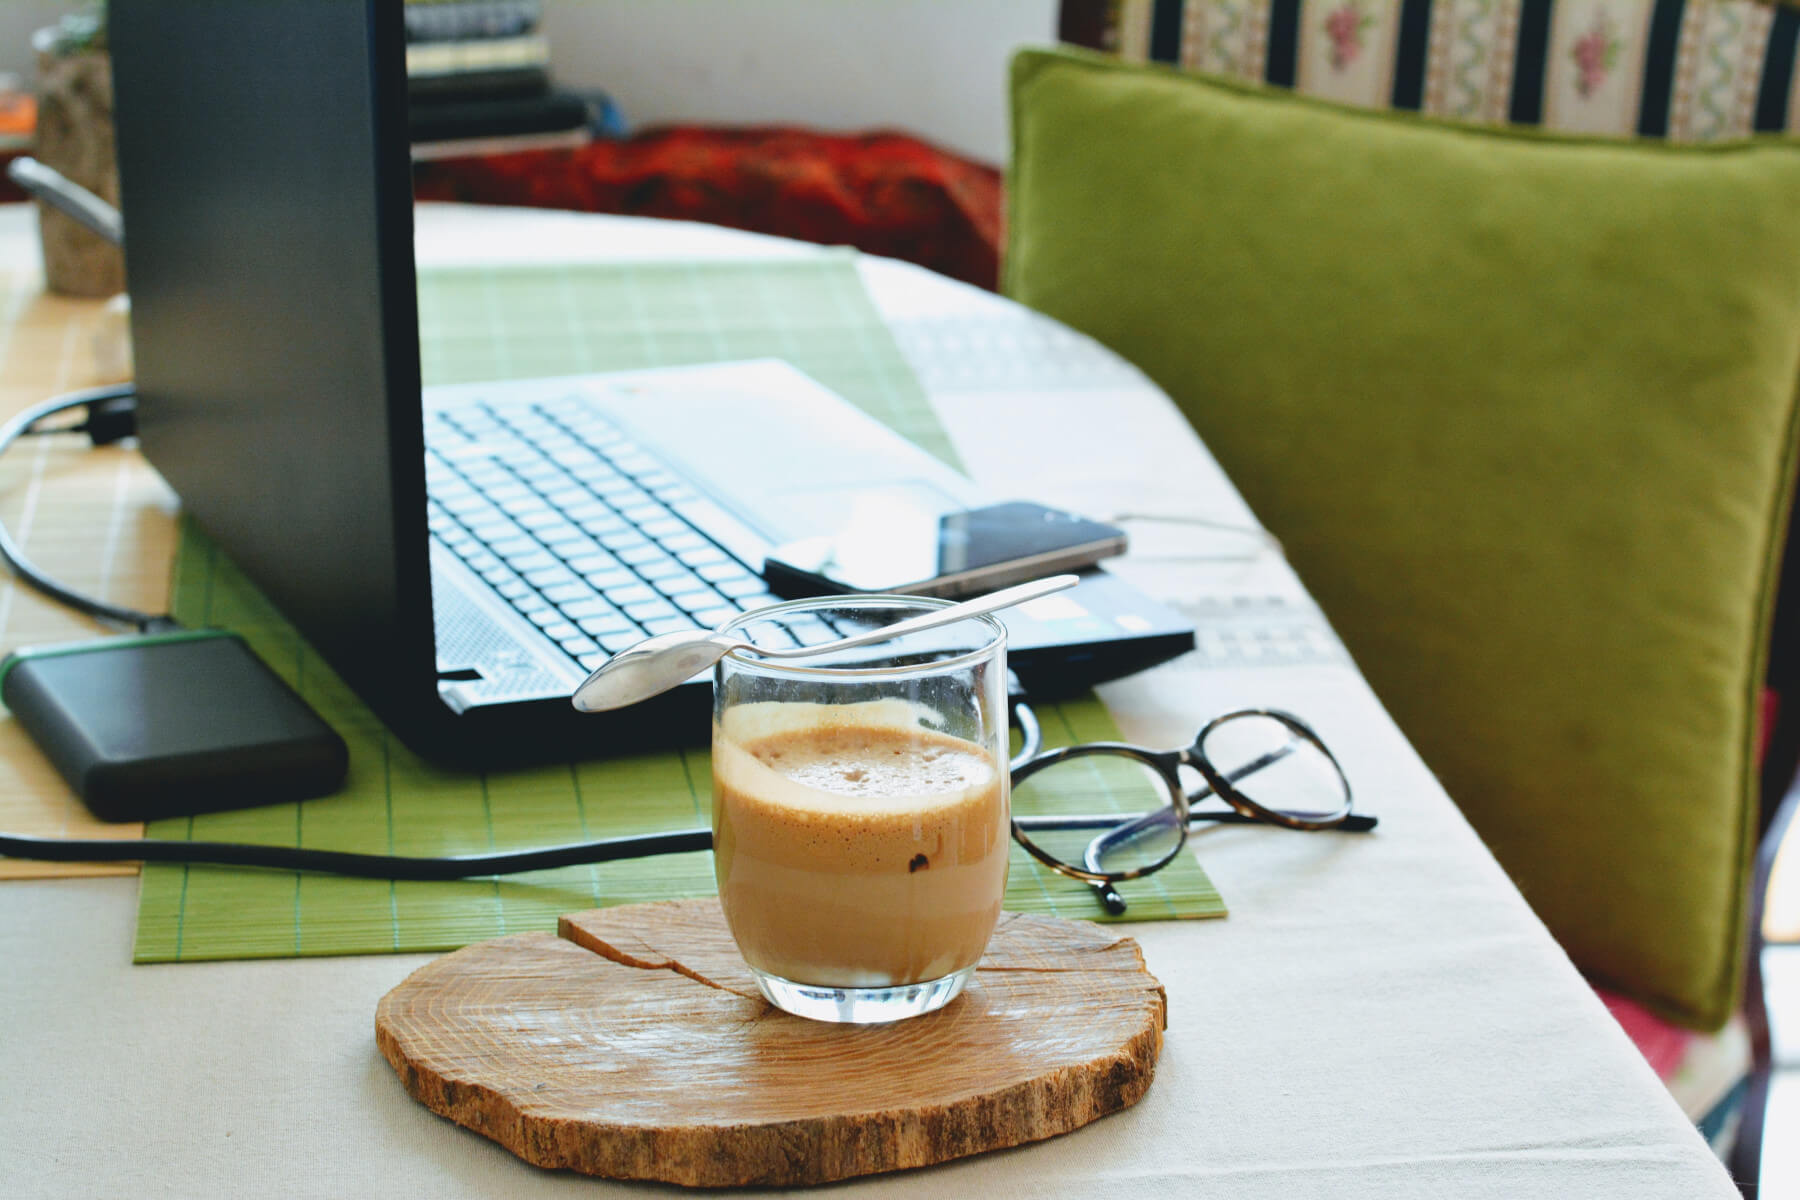 Working from home - cup of coffee on table beside laptop